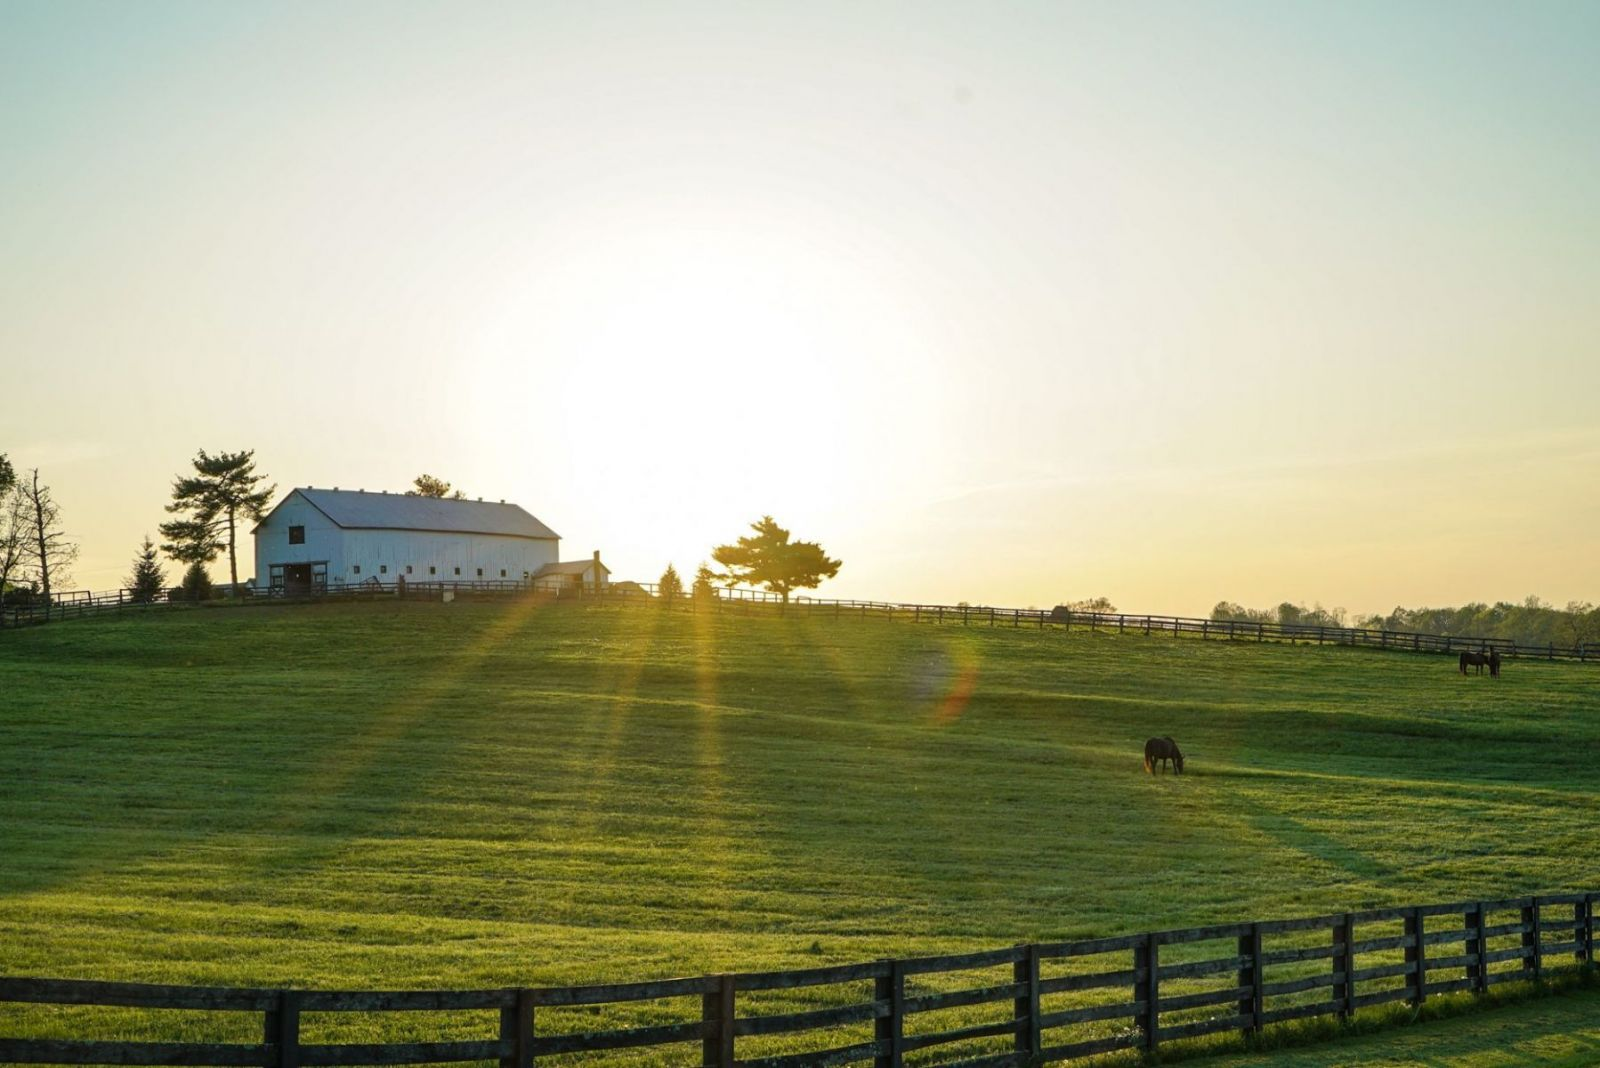 sun setting over green grass and farmland fence in foreground and barn in background